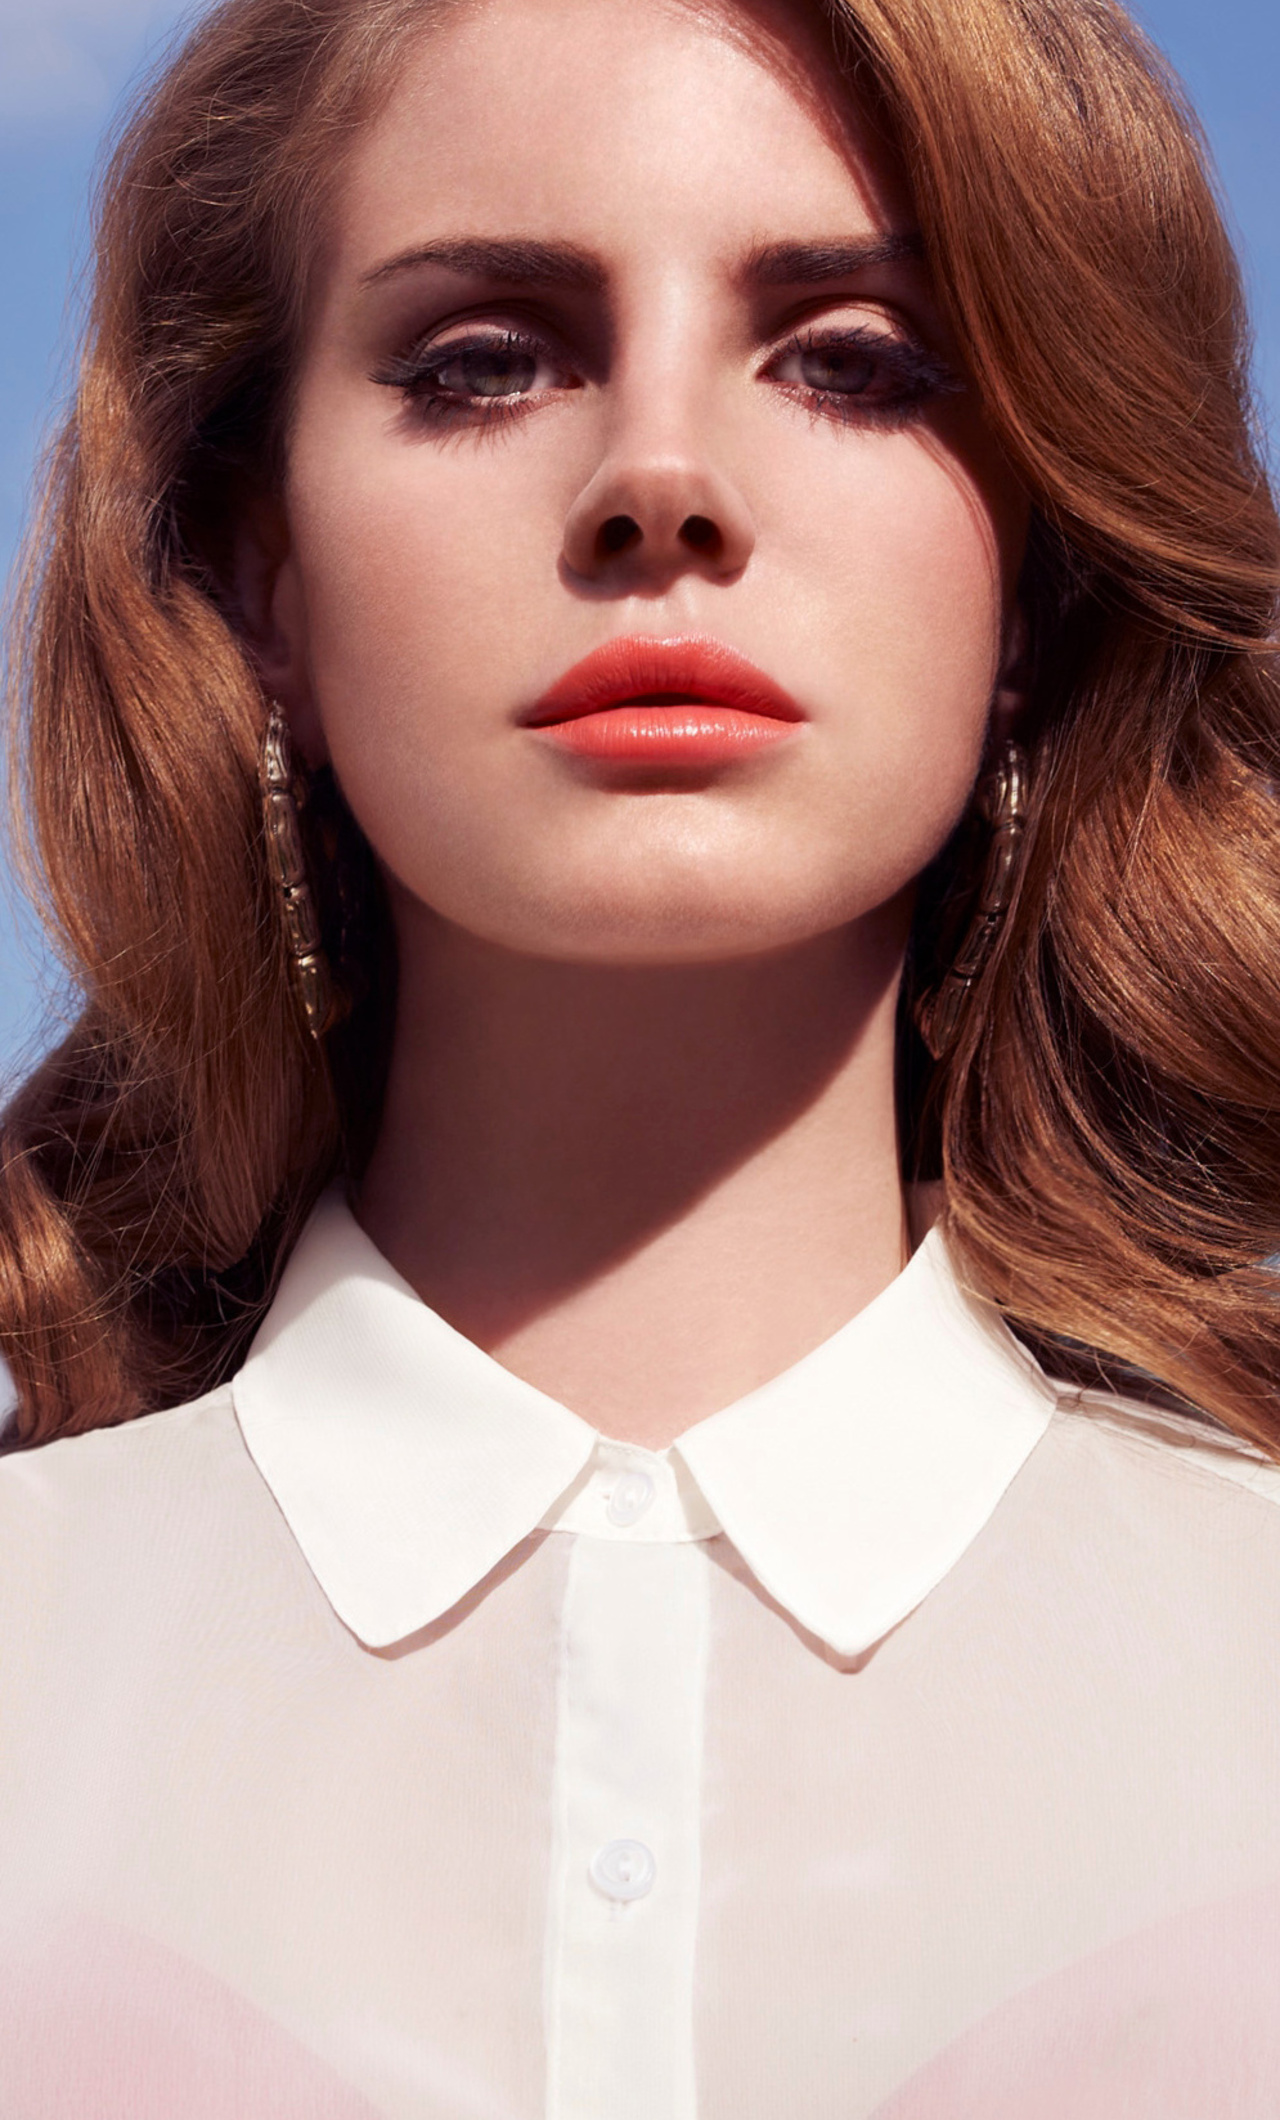 1280x2120 Lana Del Rey New Iphone 6 Hd 4k Wallpapers Images